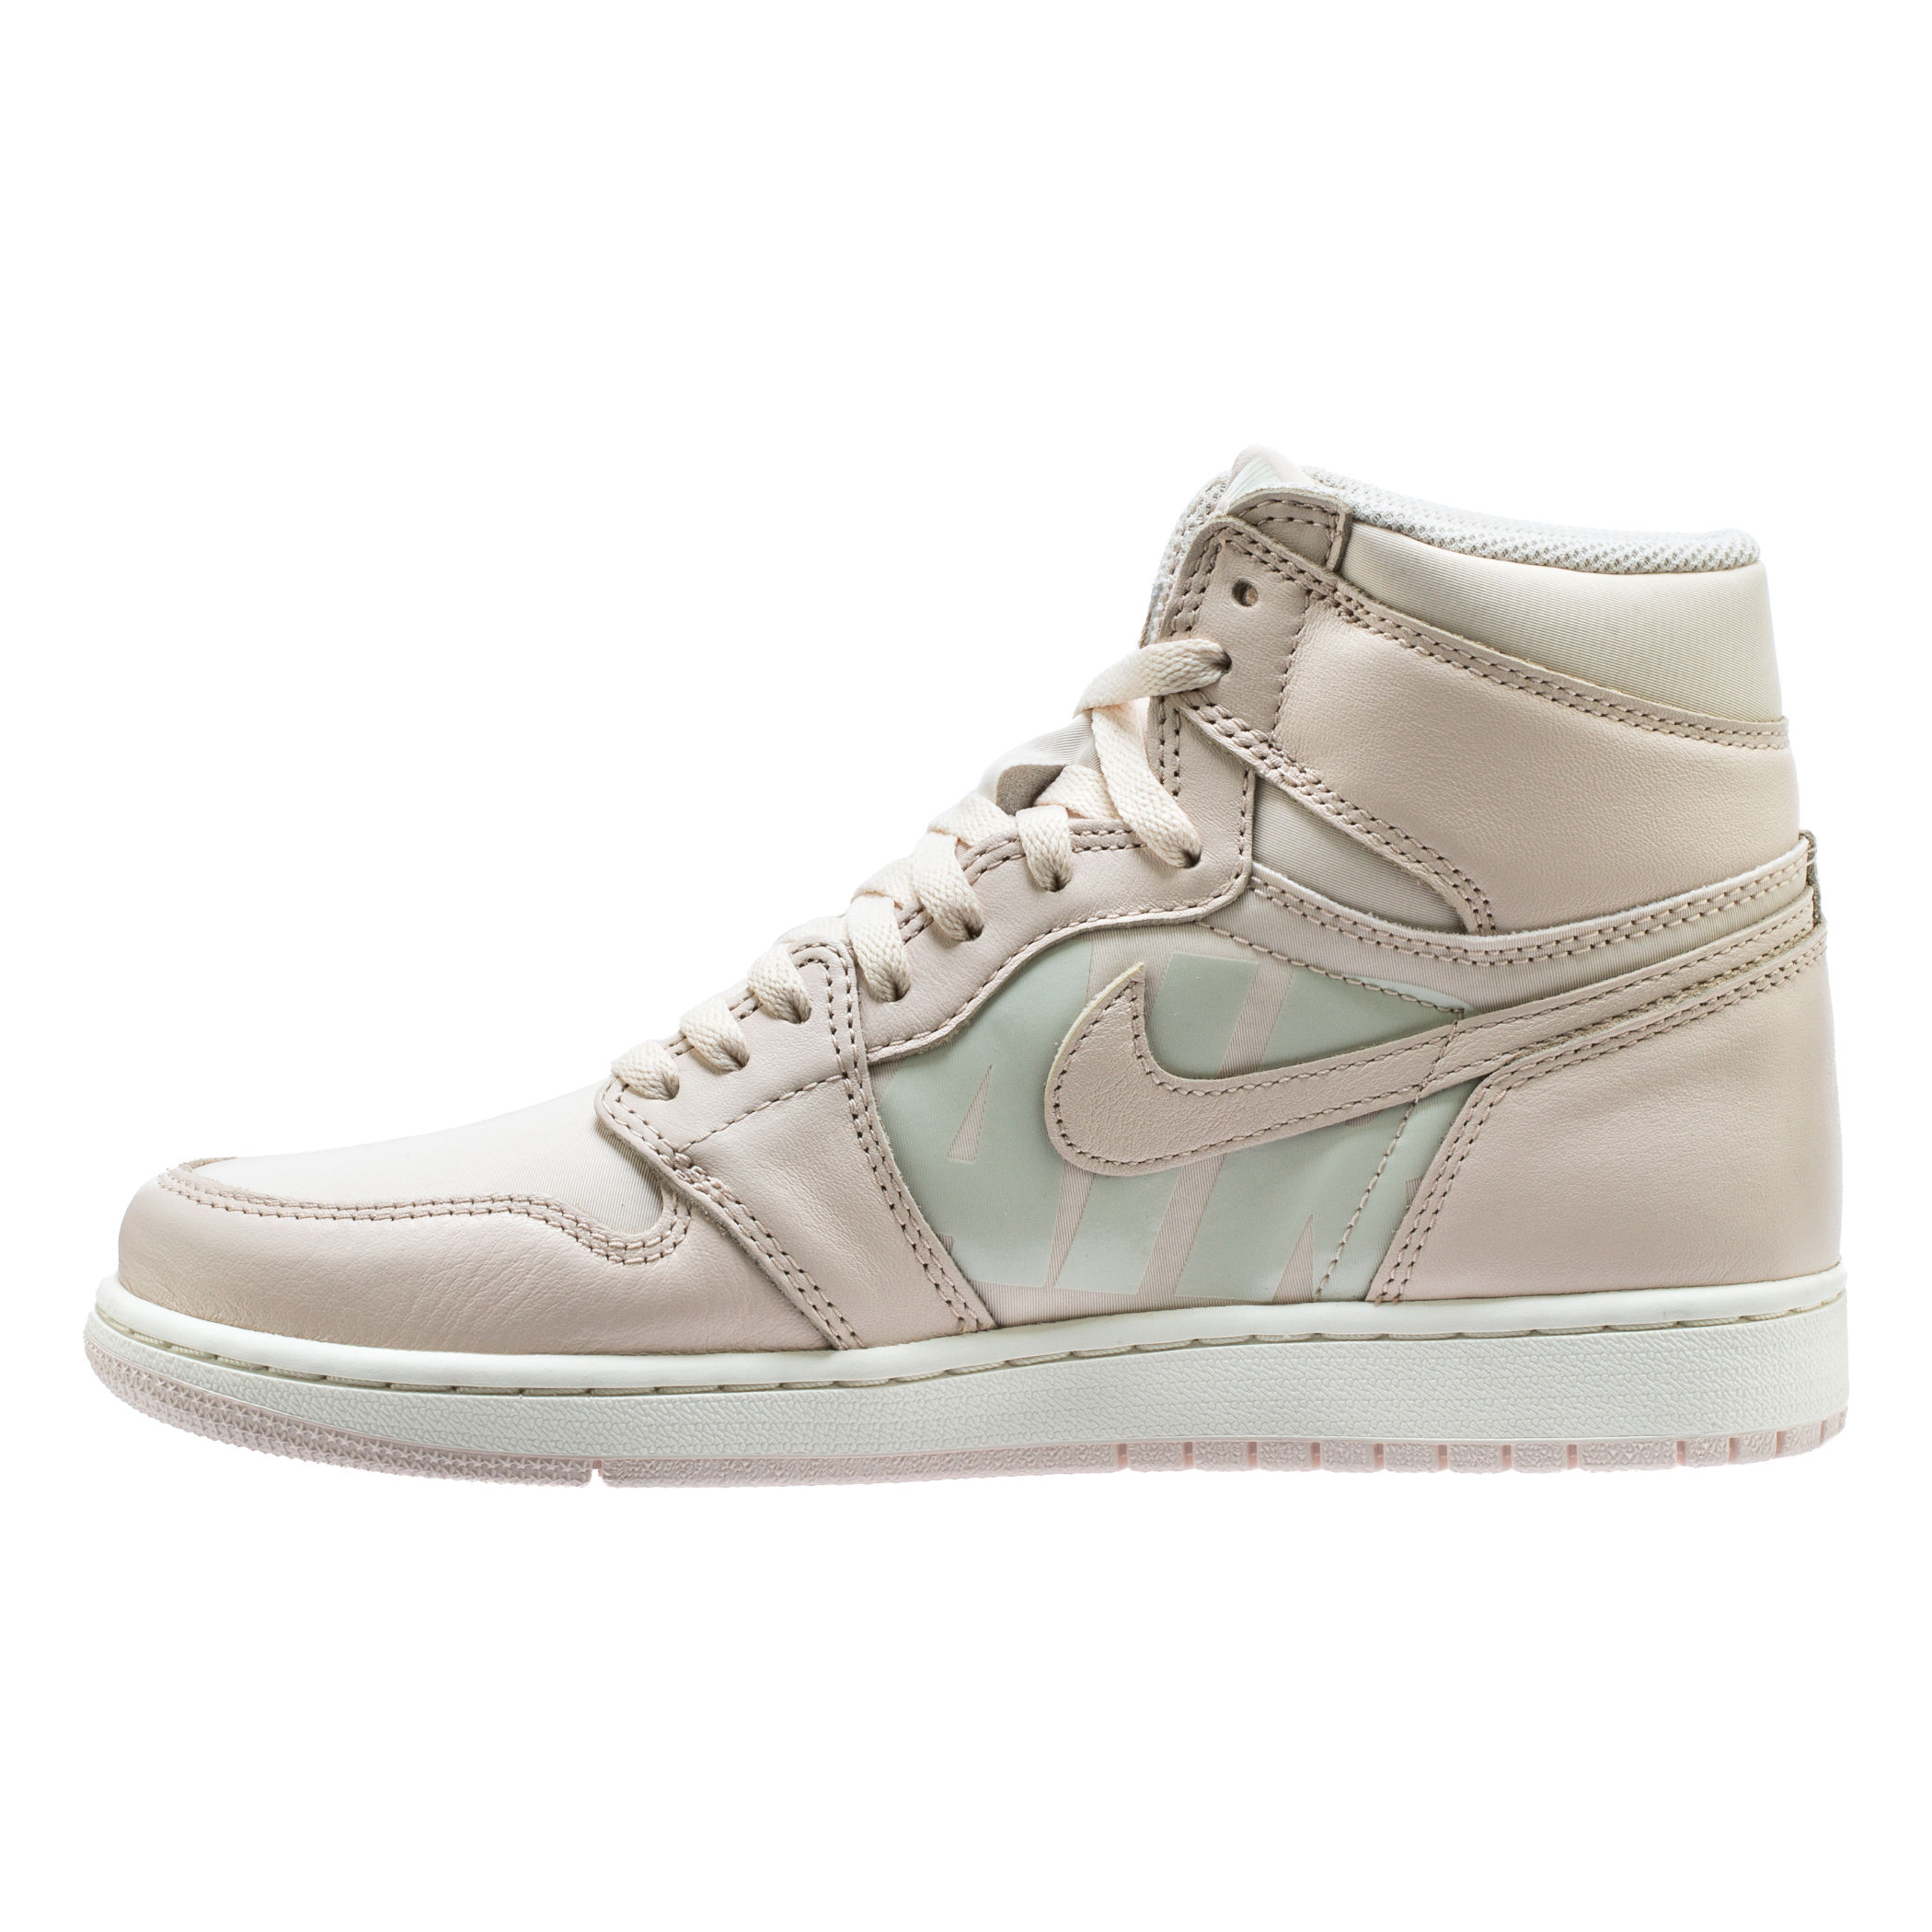 AIR JORDAN 1 RETRO HIGH OG GUAVA ICE SAIL 4 - WearTesters 55fef26a0